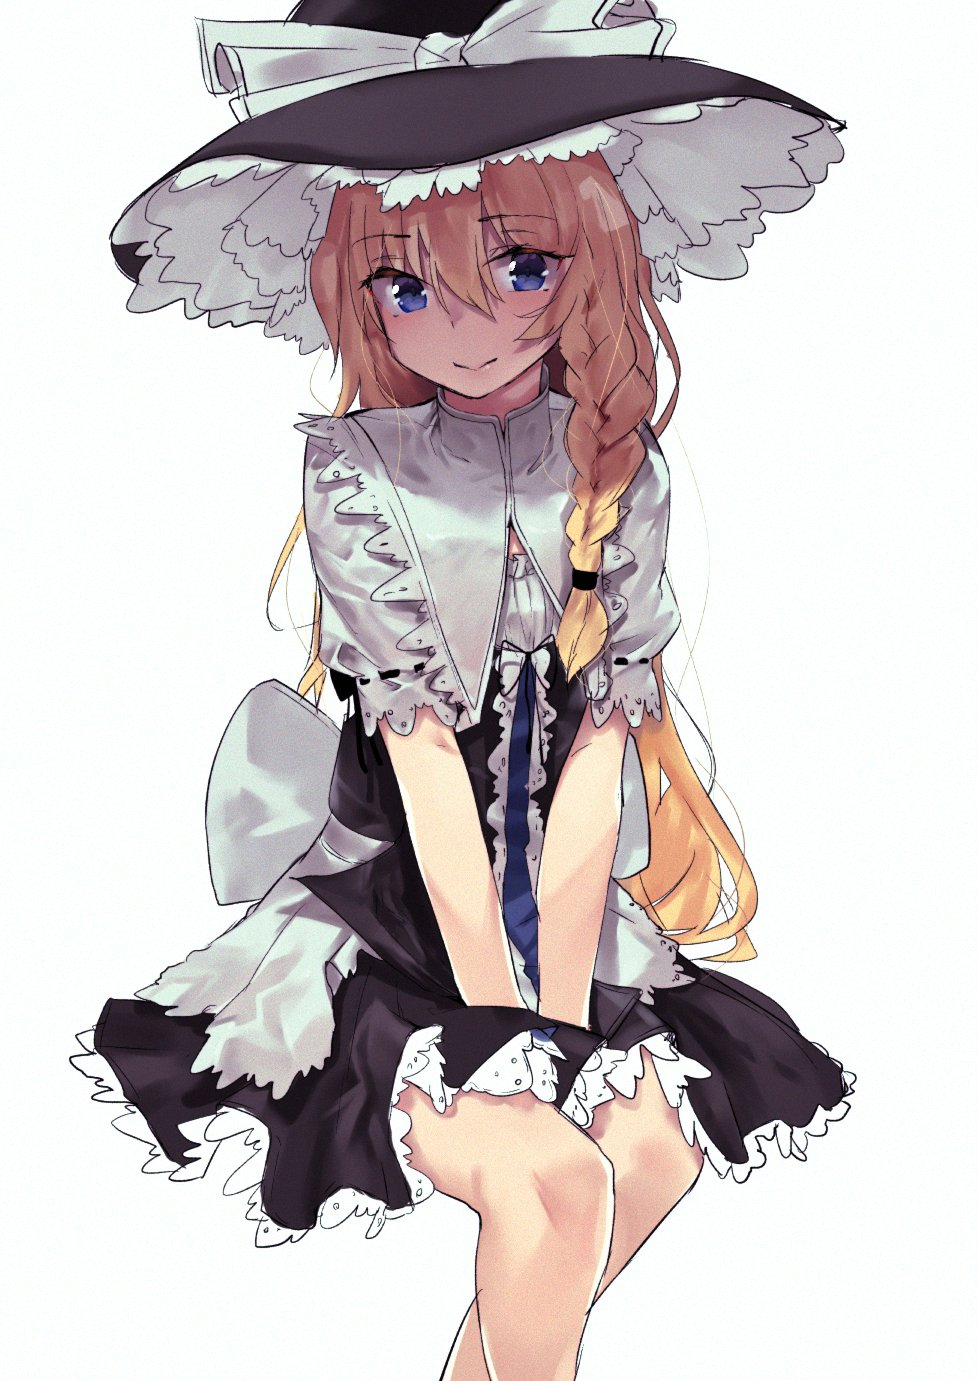 1girl asuzemu bangs between_legs black_dress blue_eyes bow braid closed_mouth dress embellished_costume eyebrows_visible_through_hair feet_out_of_frame hair_between_eyes hair_tie hand_between_legs hat hat_bow highres invisible_chair kirisame_marisa large_bow long_hair looking_at_viewer ribbon-trimmed_sleeves ribbon_trim short_sleeves side_braid sitting smile solo touhou v_arms very_long_hair white_background white_bow white_capelet witch_hat